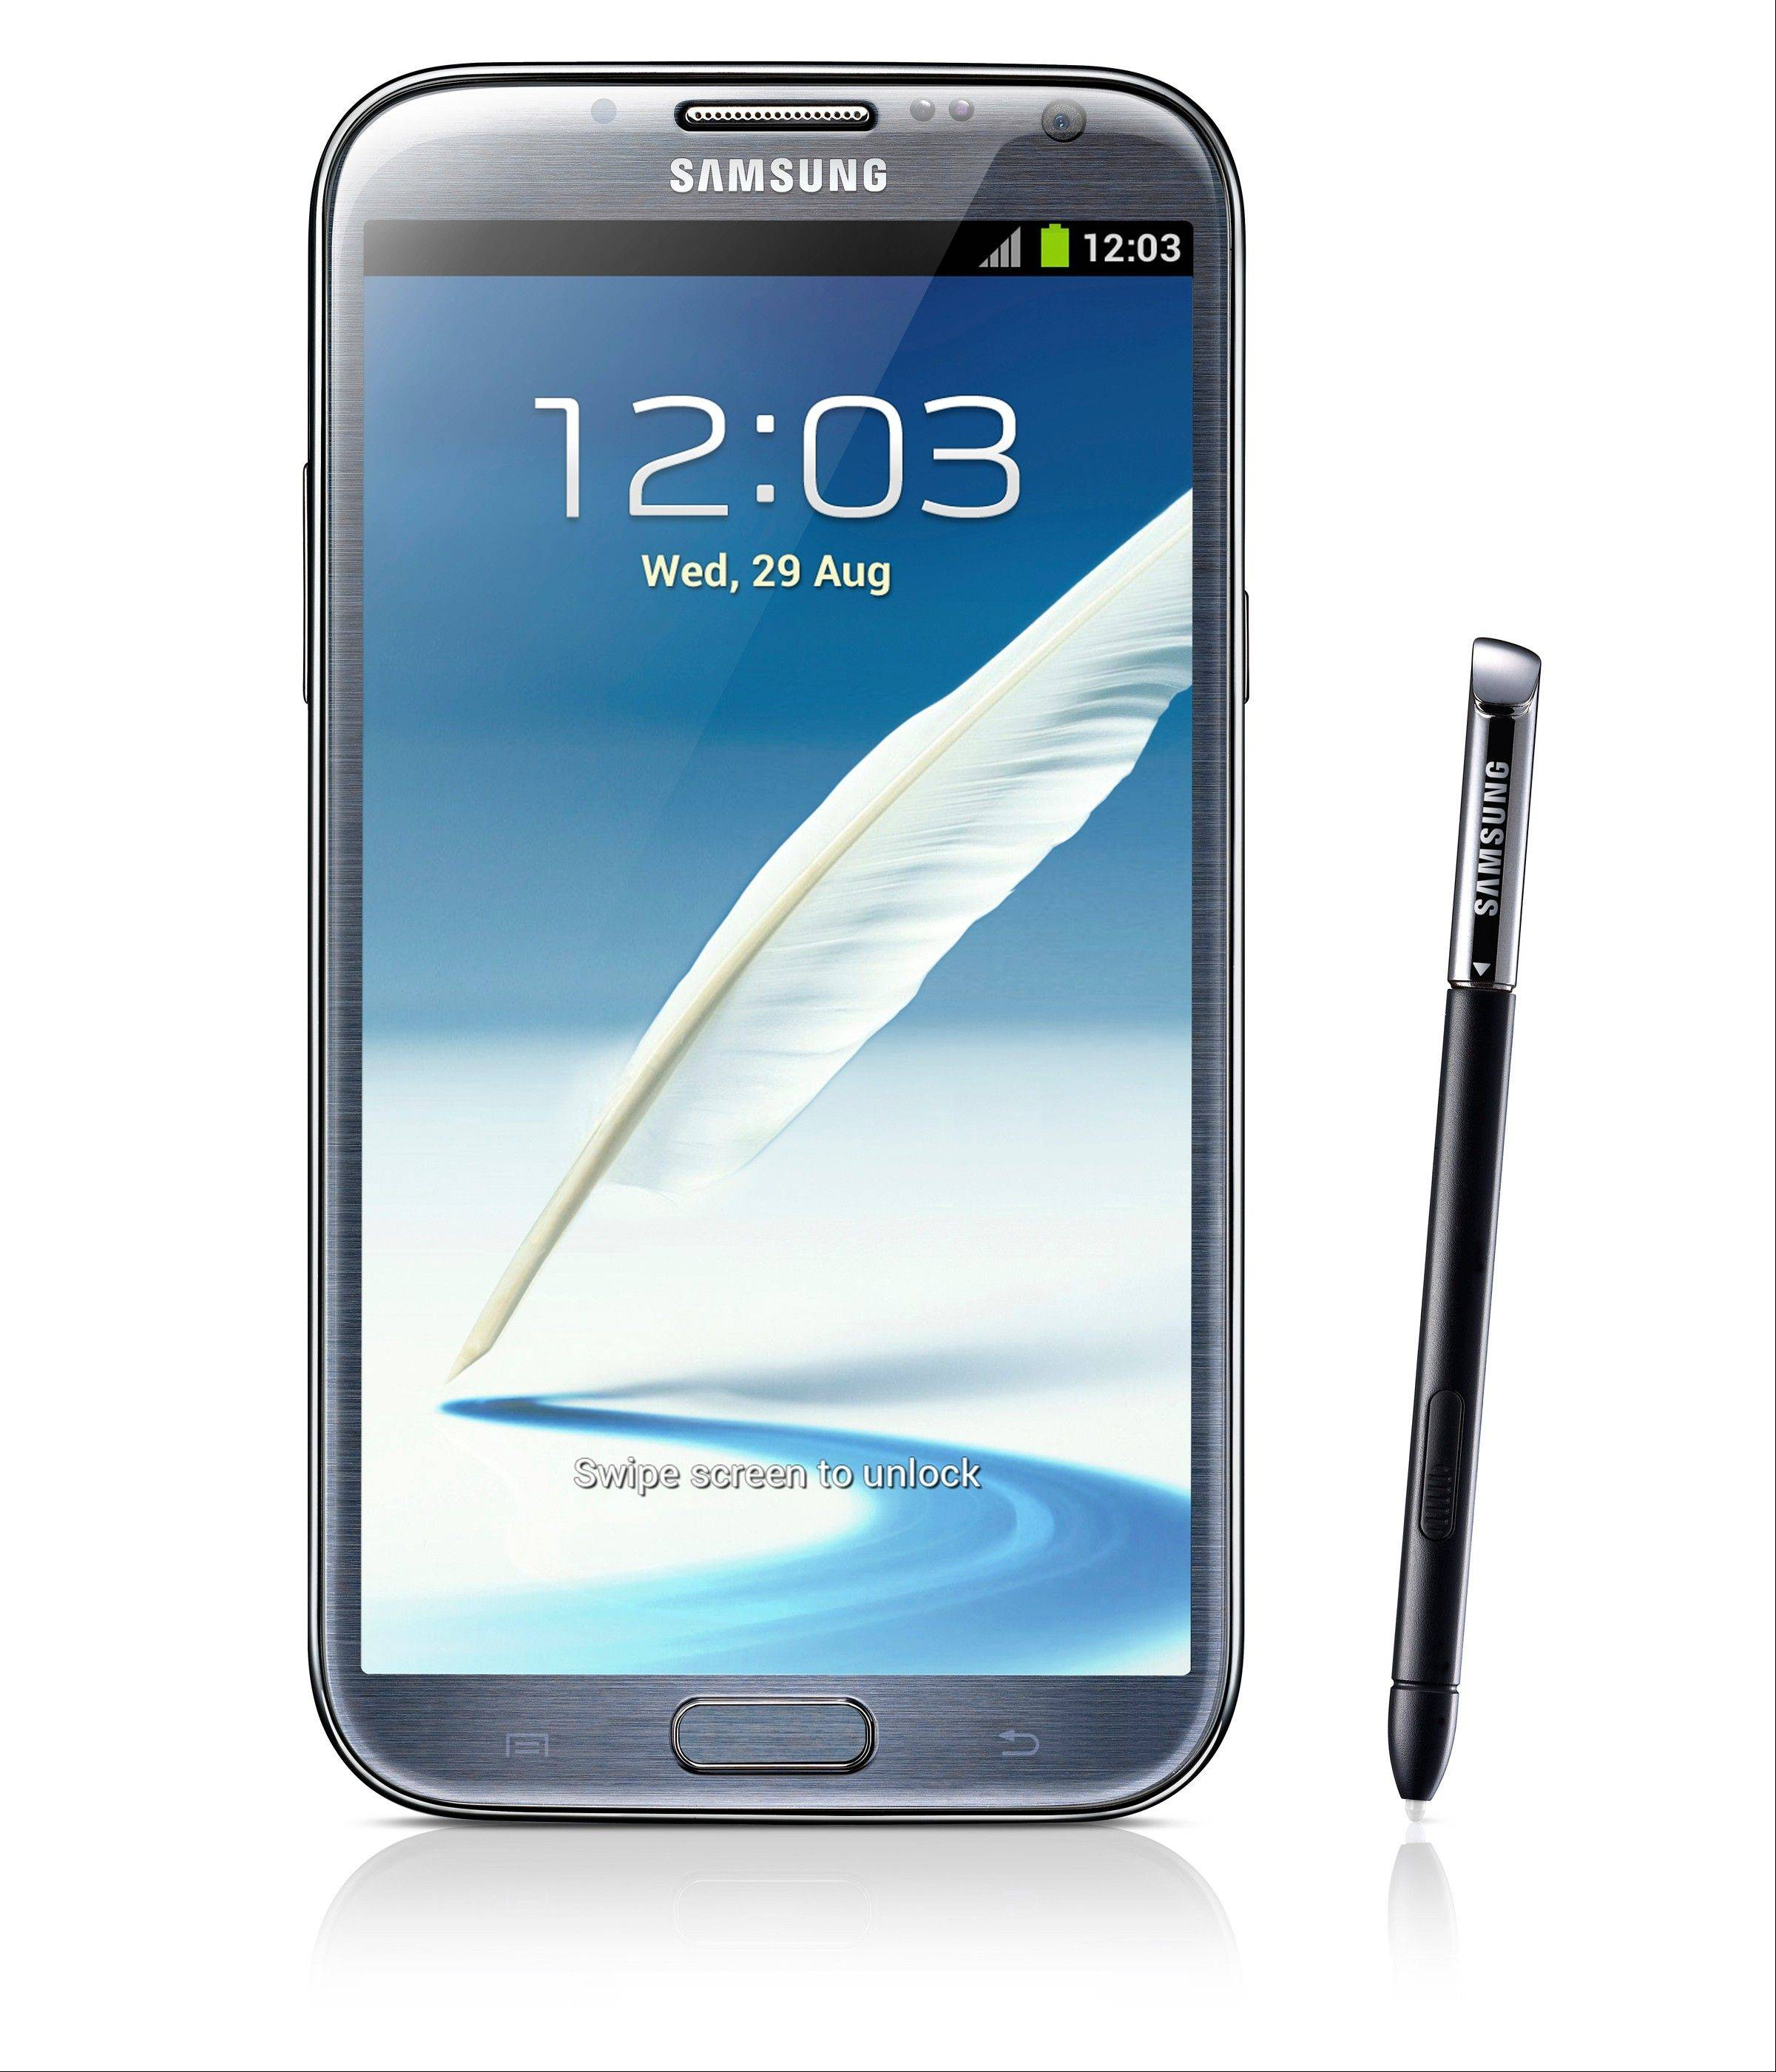 Samsung, the world's largest maker of phones, announced Wednesday, just days after a wounding legal battle with Apple, that the company will be revealing the Galaxy Note II, an offbeat, oversized smartphone that's become a surprise hit.